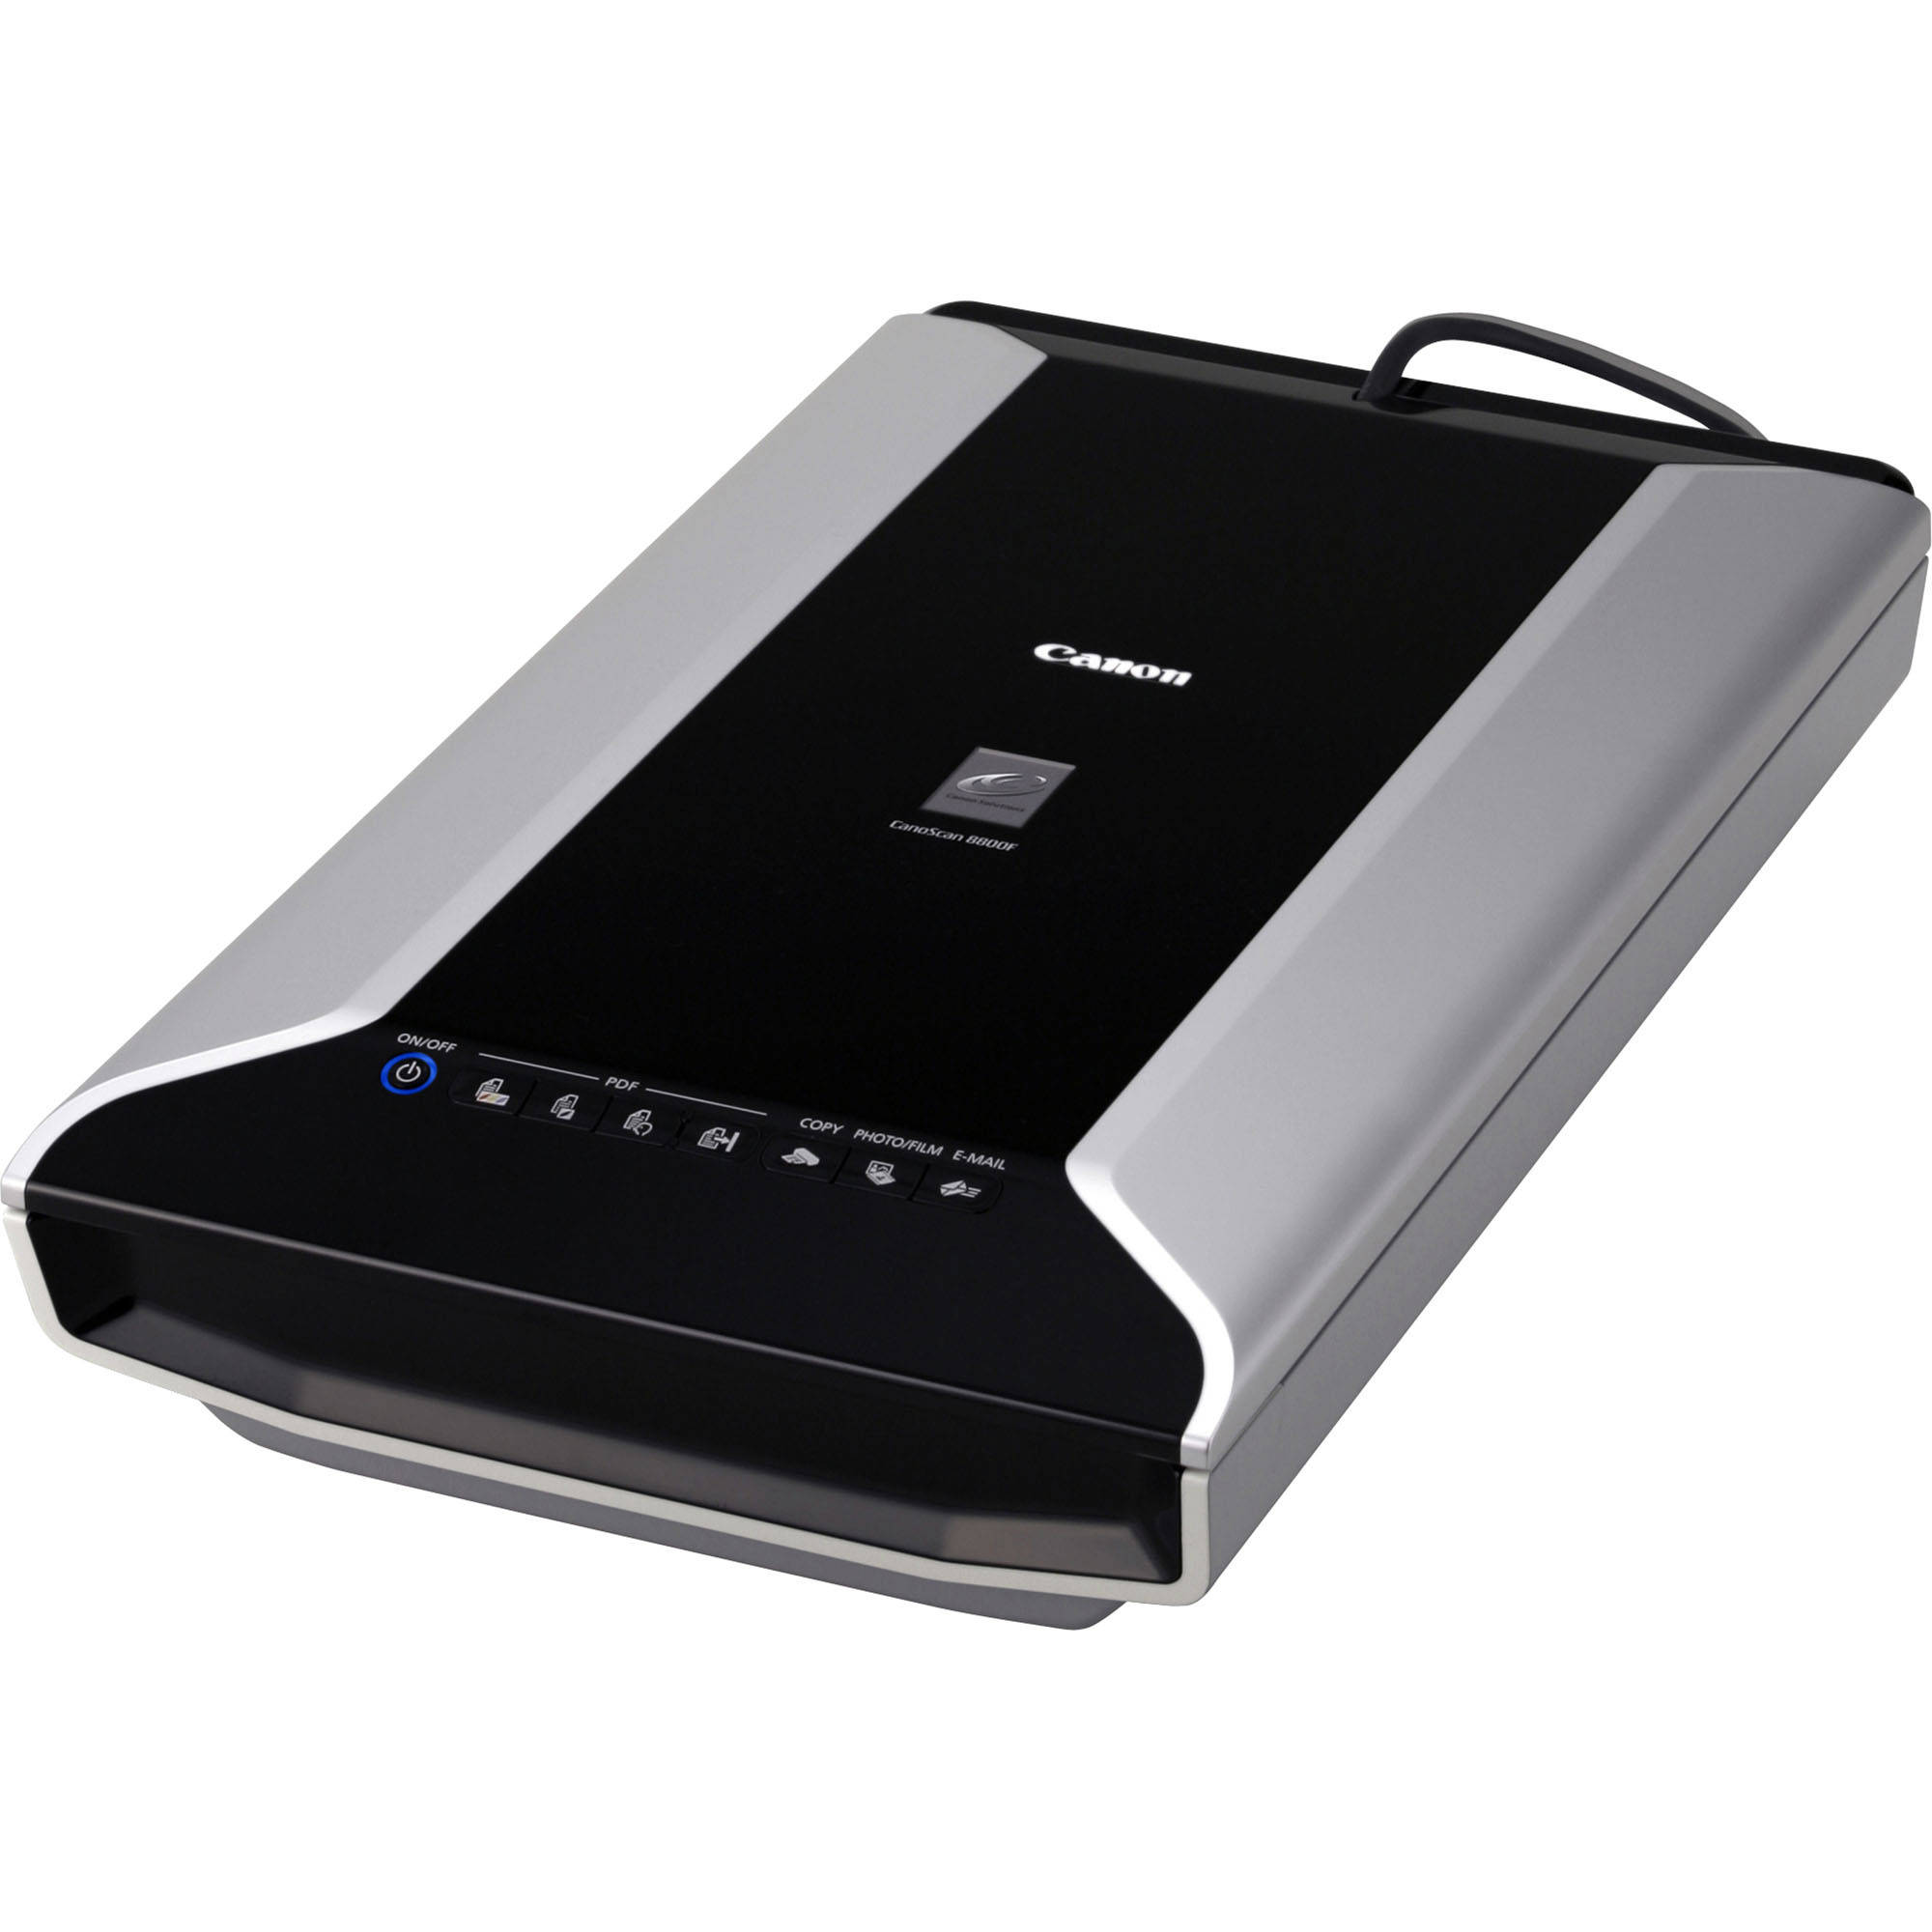 Canon CanoScan 8800F Flatbed Scanner B&H Photo Video